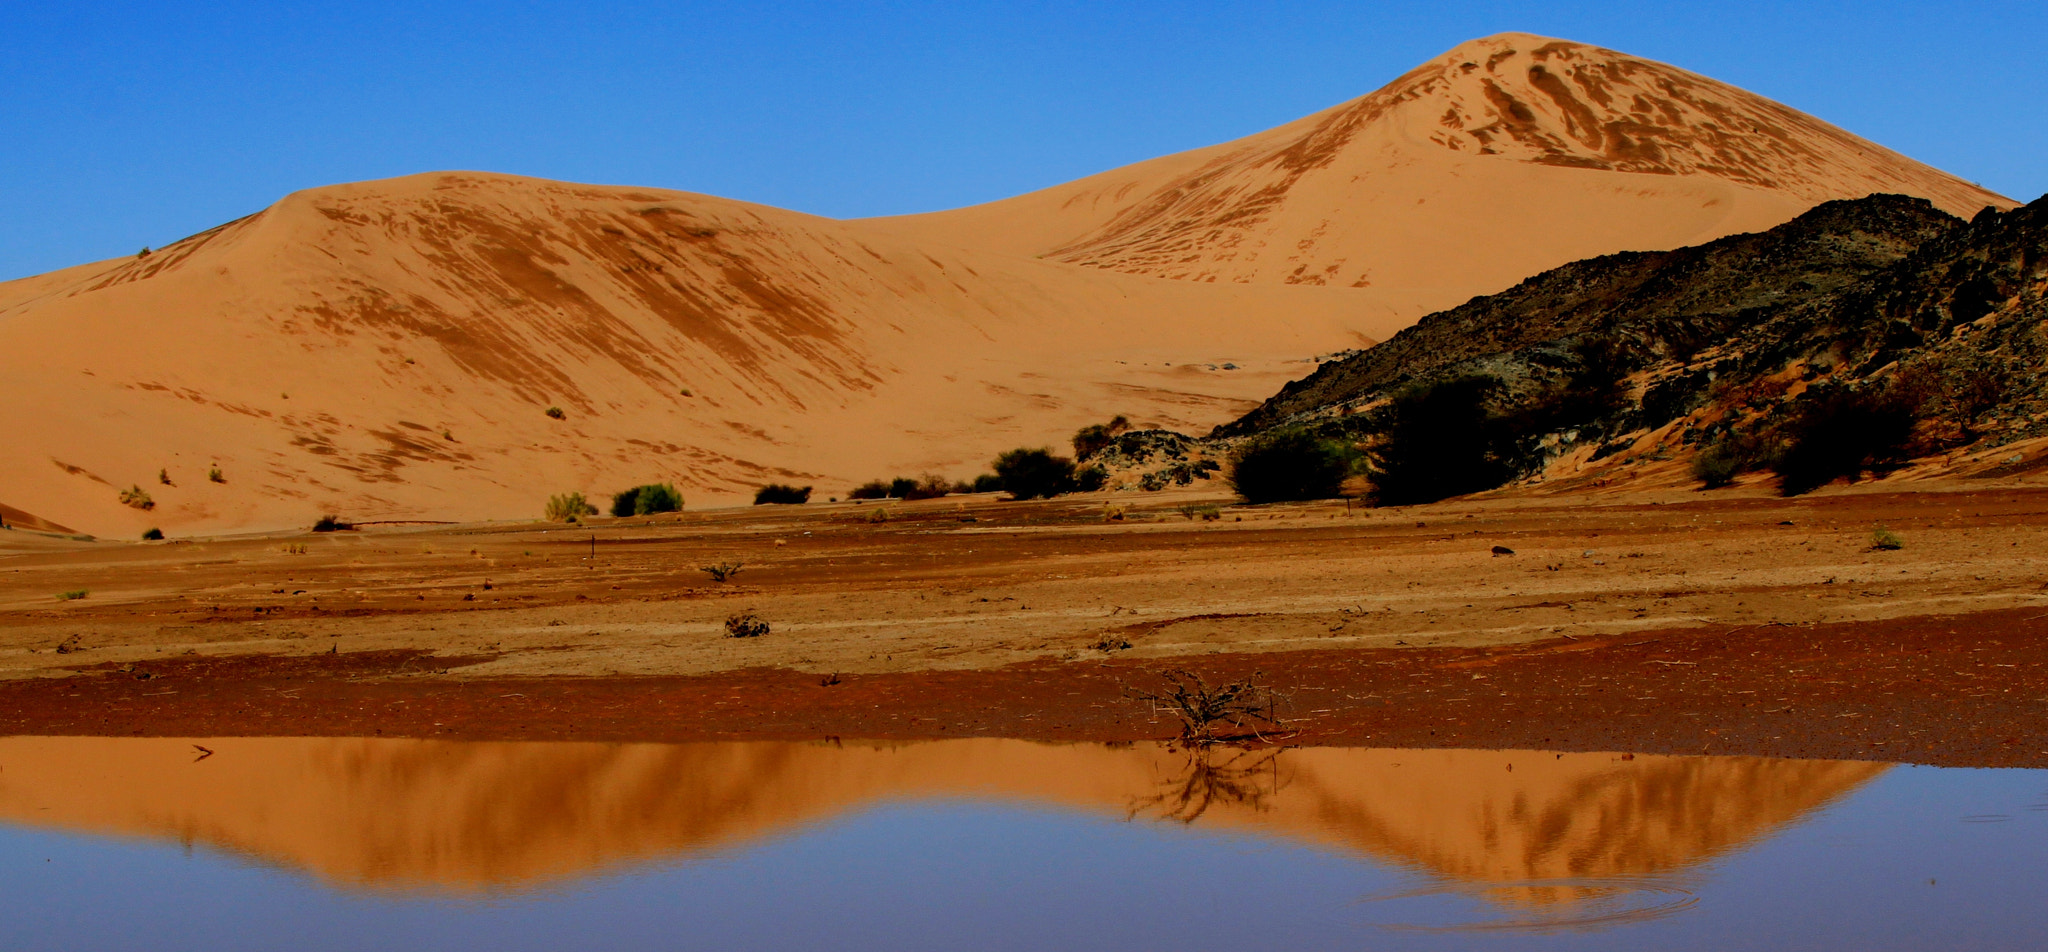 Photograph aljappyah desert * reflection  by Ahmed alharbi on 500px